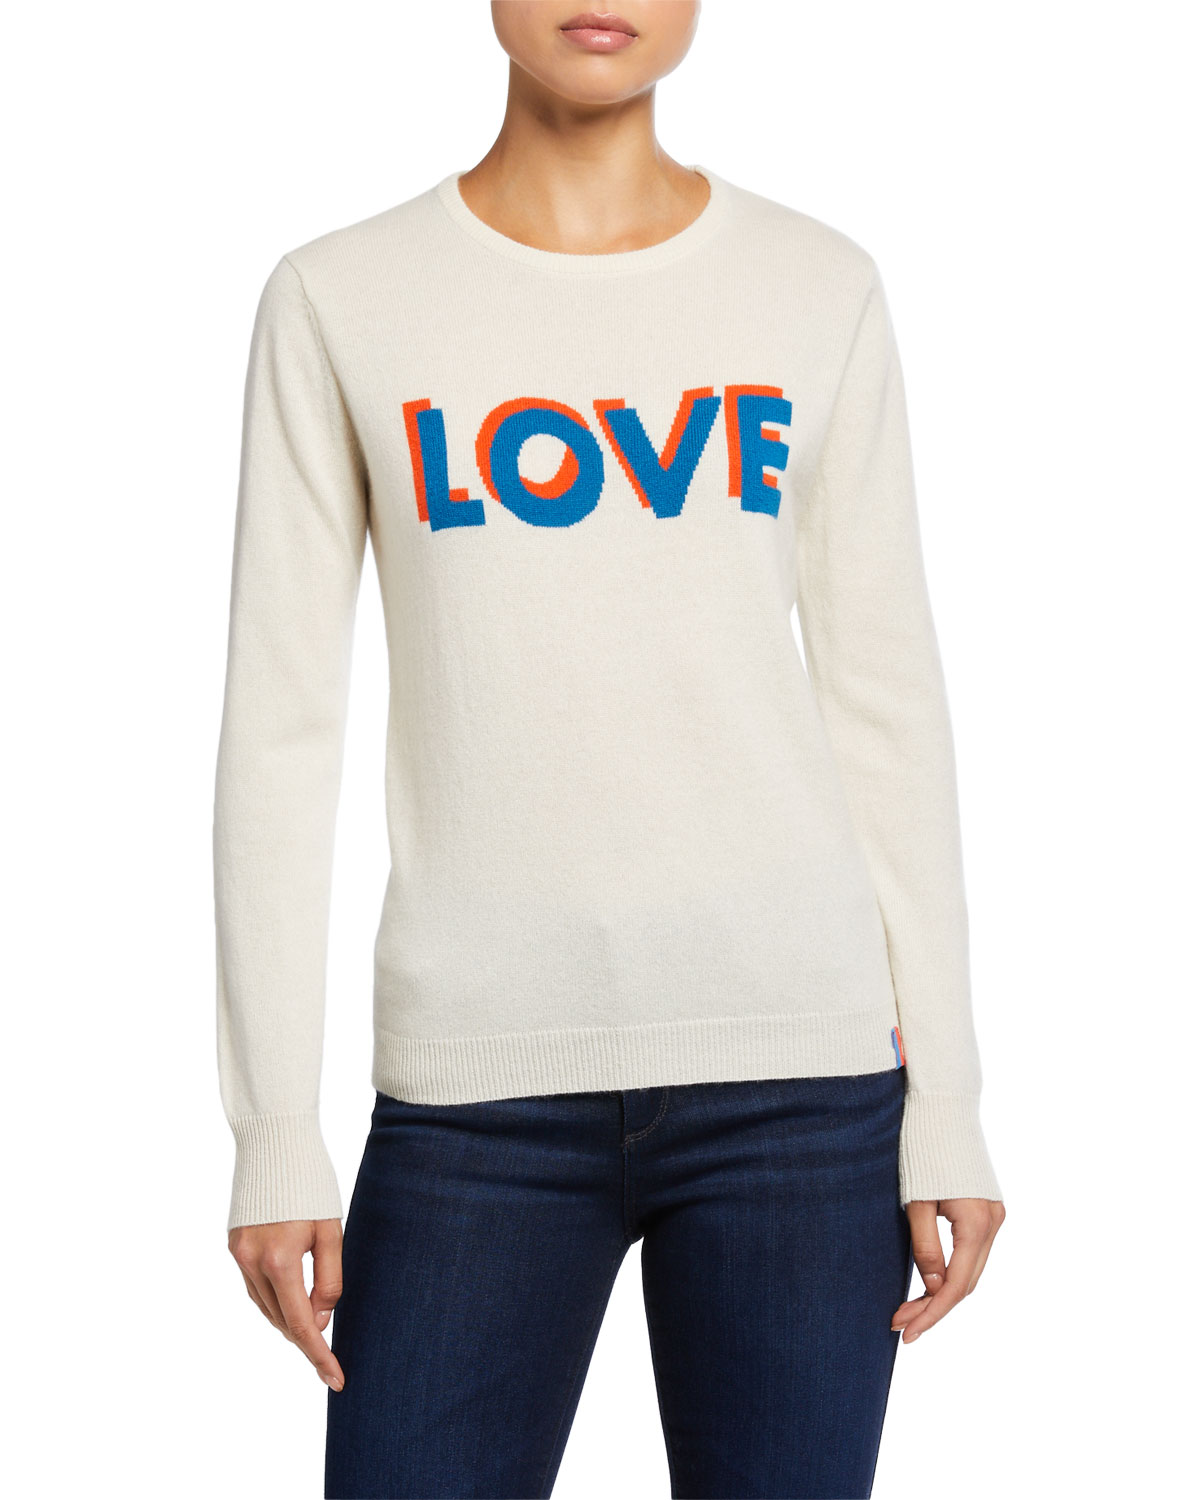 Kule Sweaters THE LOVE SWEATER